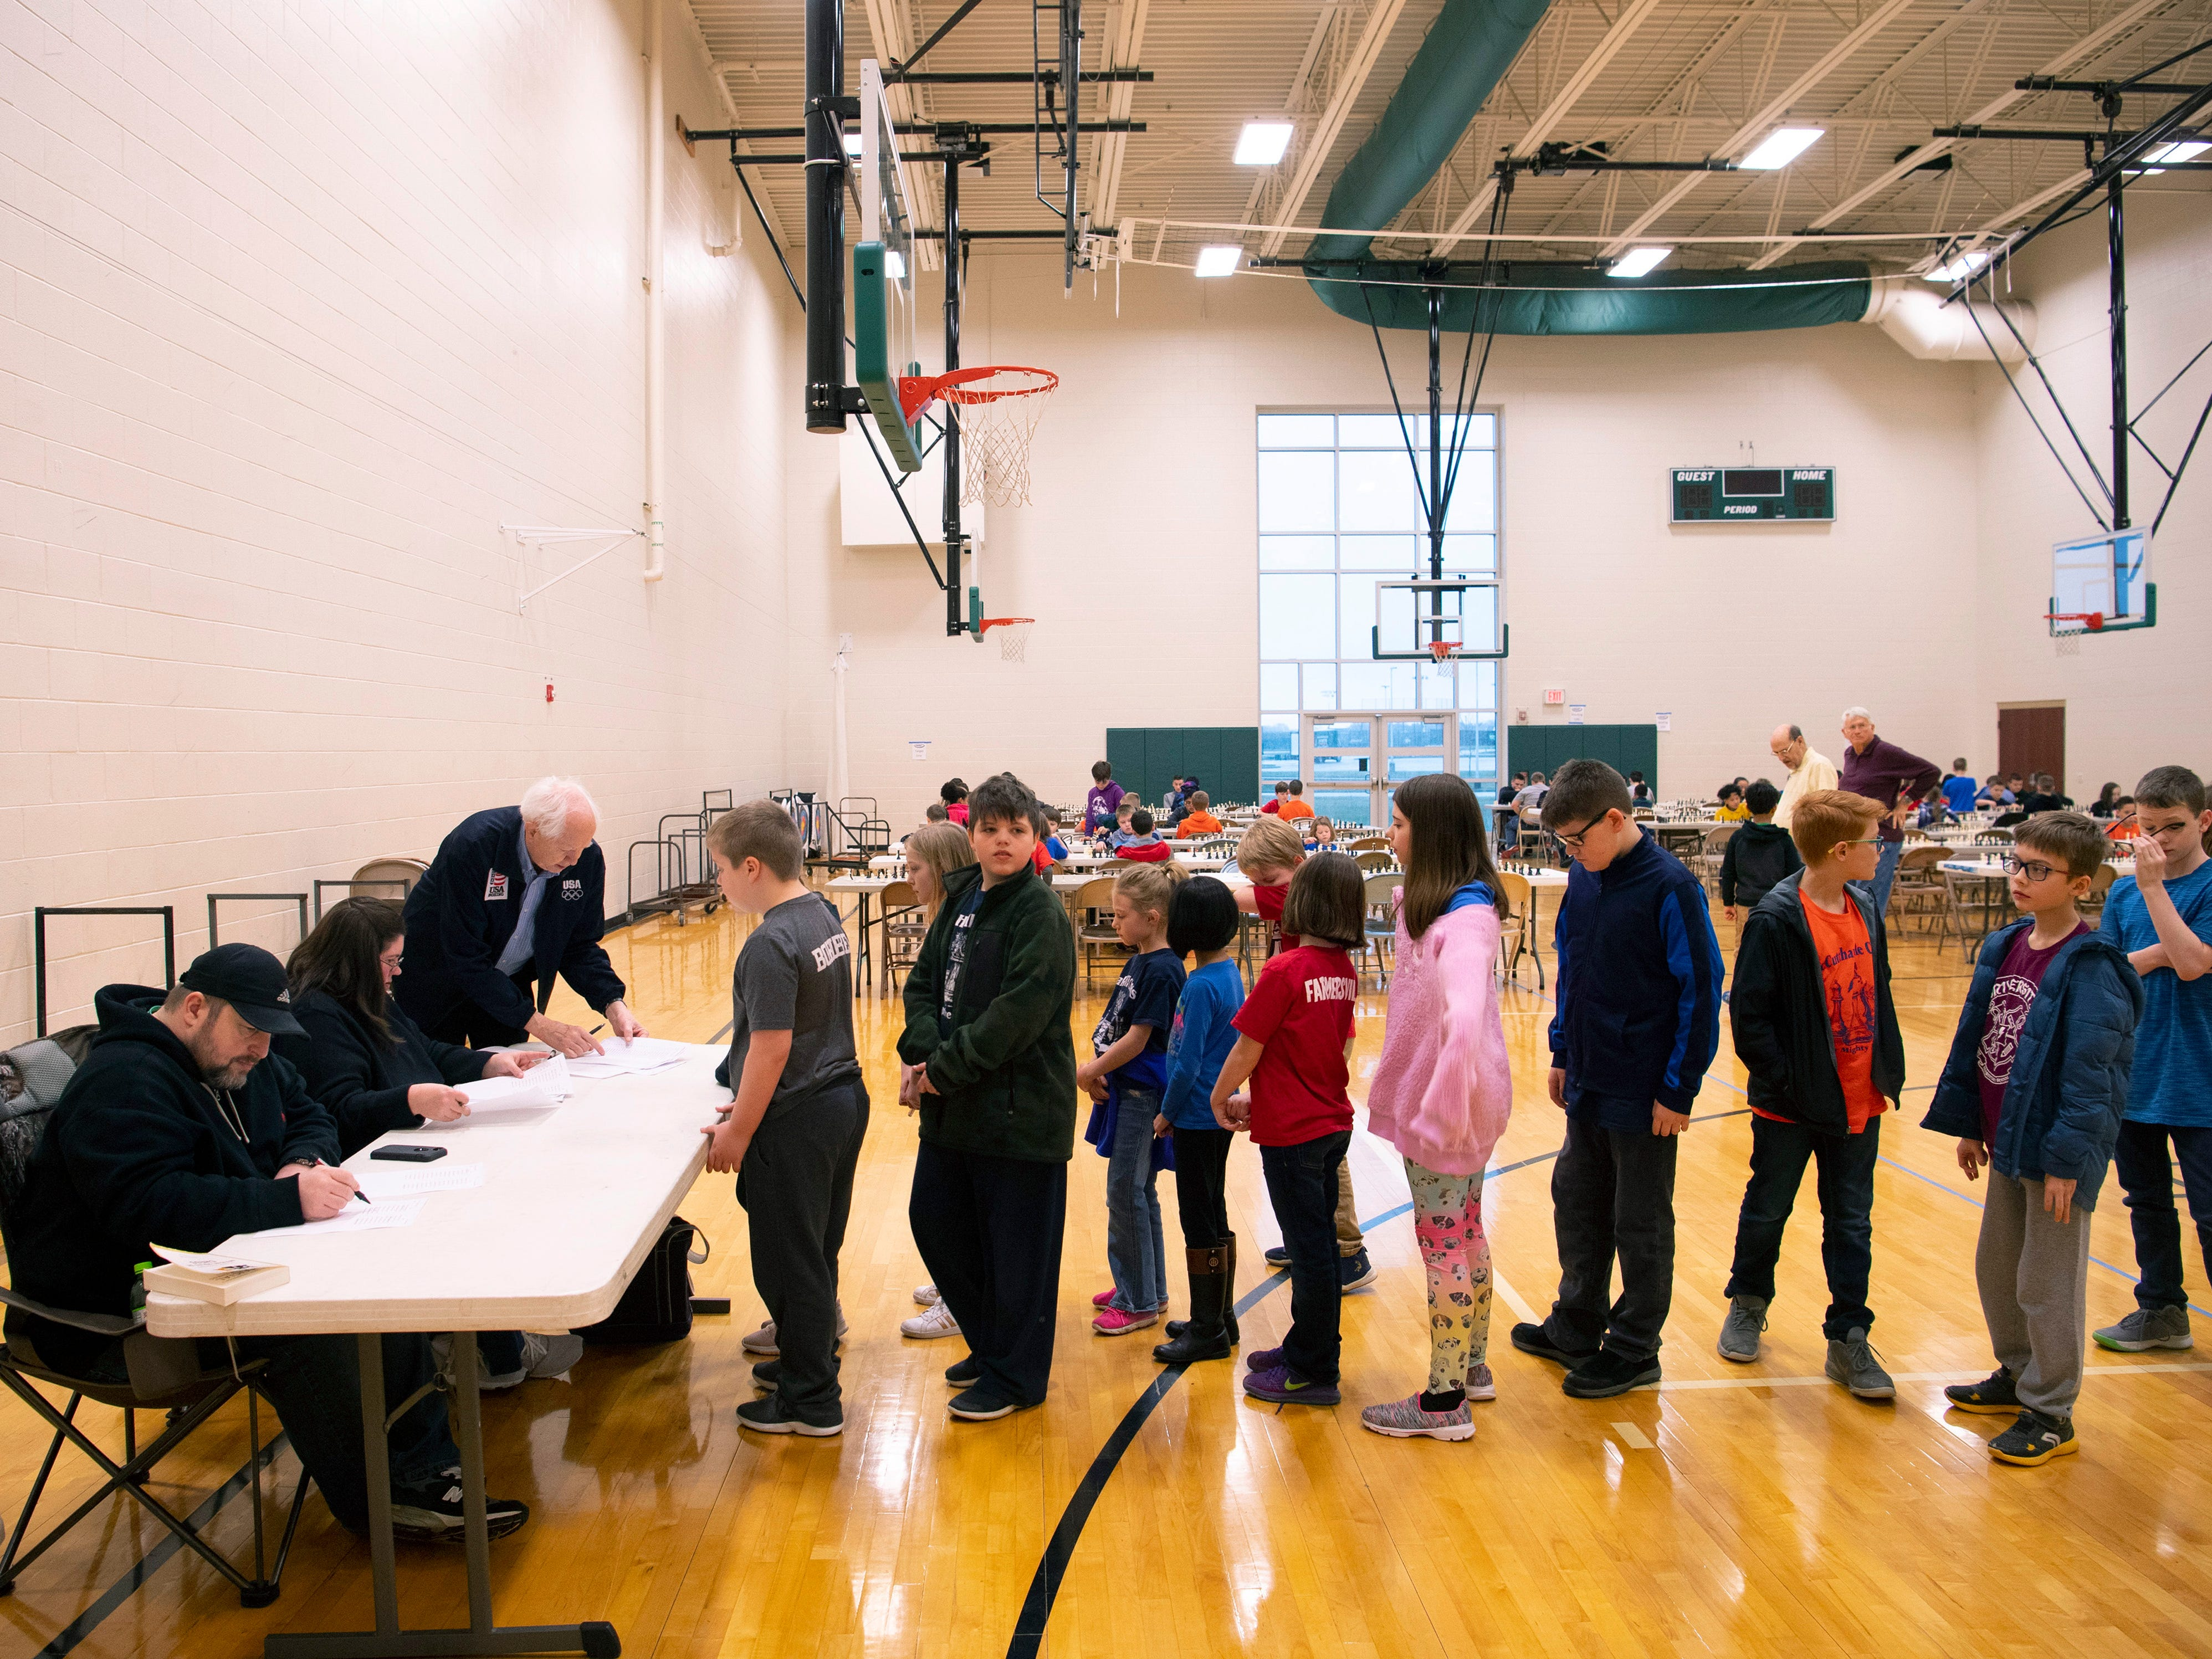 Participants wait their turns to record their match results at the K-12 Spring Scholastic Chess Tournament at North Junior High School Saturday.